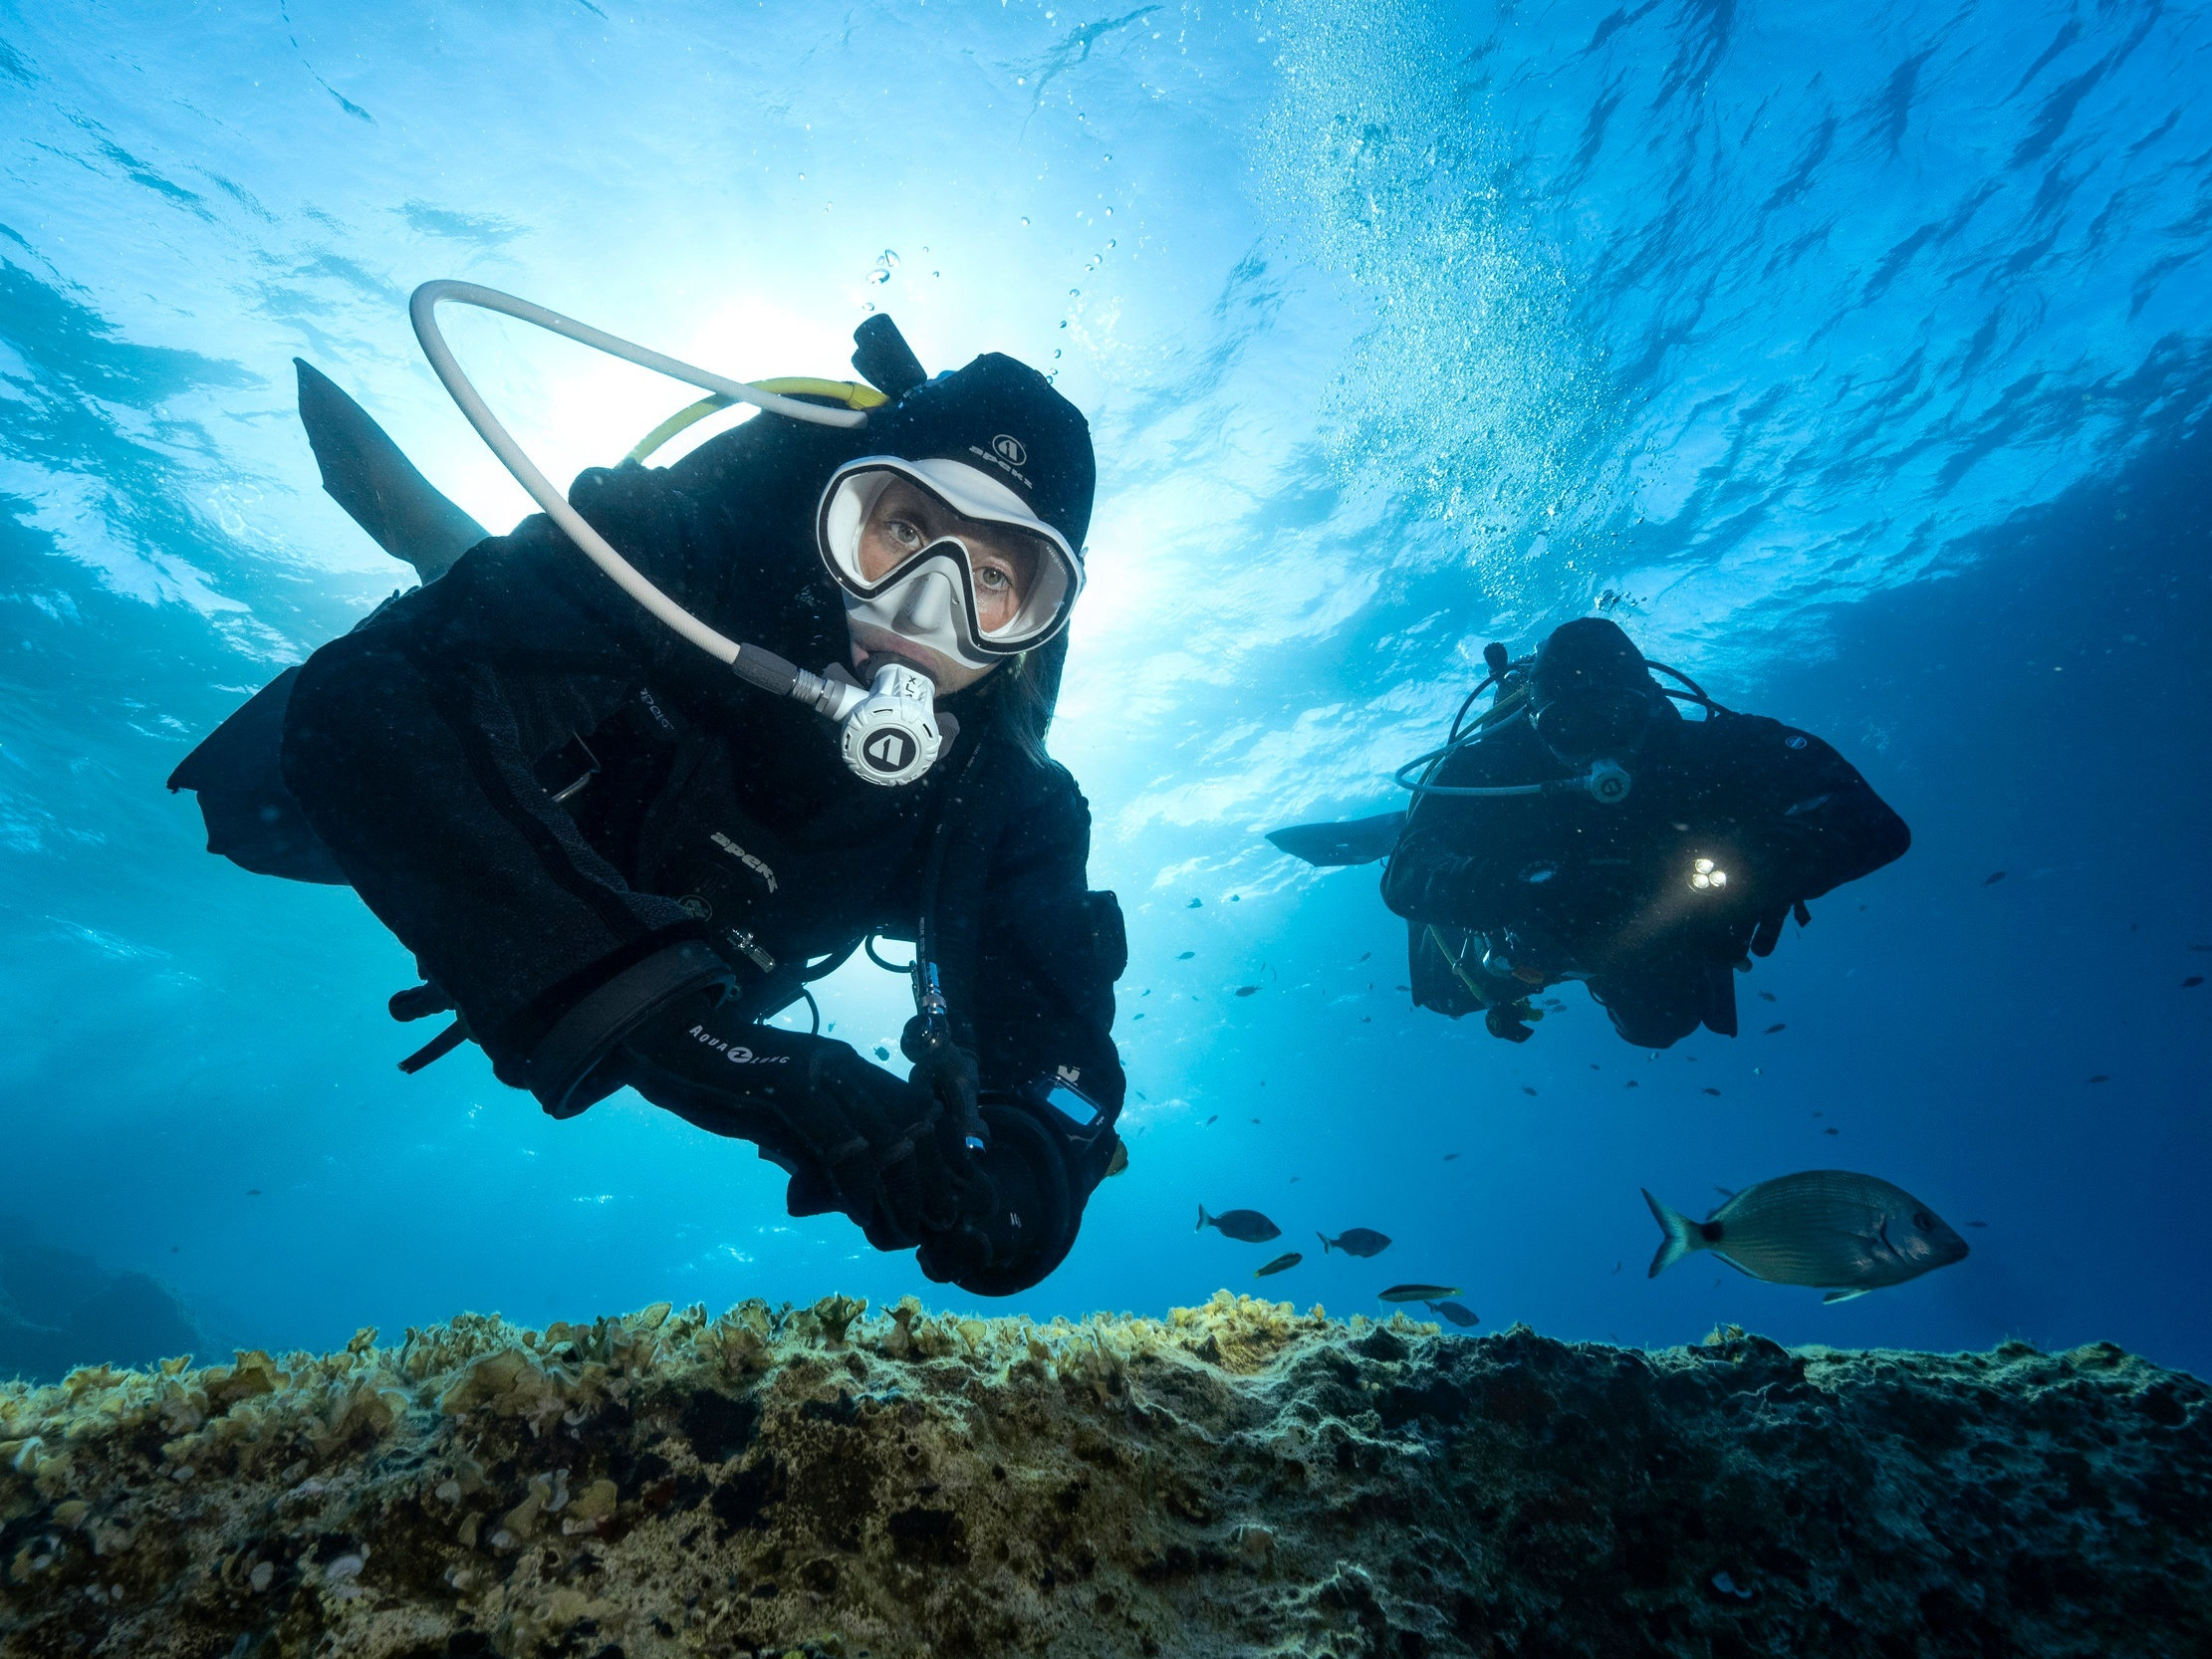 Courses - DIVE INTO ROWAND'S REEF COURSES AND EXPLORE AN INCREDIBLE NEW WORLD